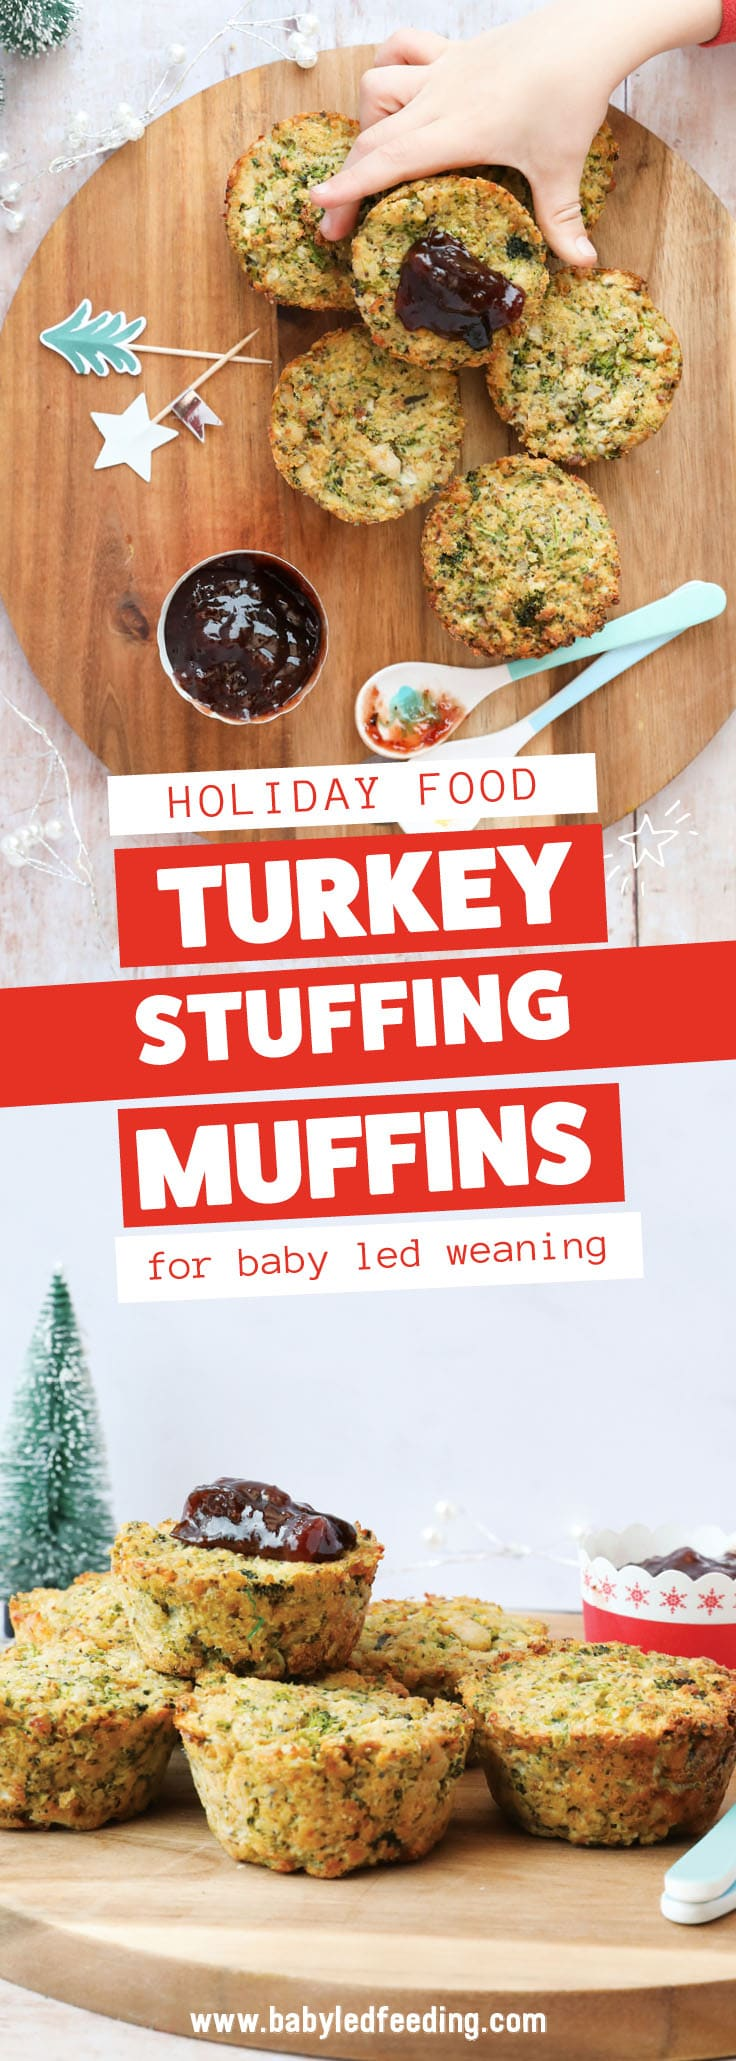 Wholegrain Turkey Stuffing Muffins make a healthy leftover recipe that is easy and freezer friendly. Served with a dollop of cranberry sauce, the little muffins are a healthy finger food the entire family can enjoy. They make healthy appetizers too! #leftovers #holidayrecipe #turkeyrecipe #babyledweaning #babyledfeeding #christmasrecipe